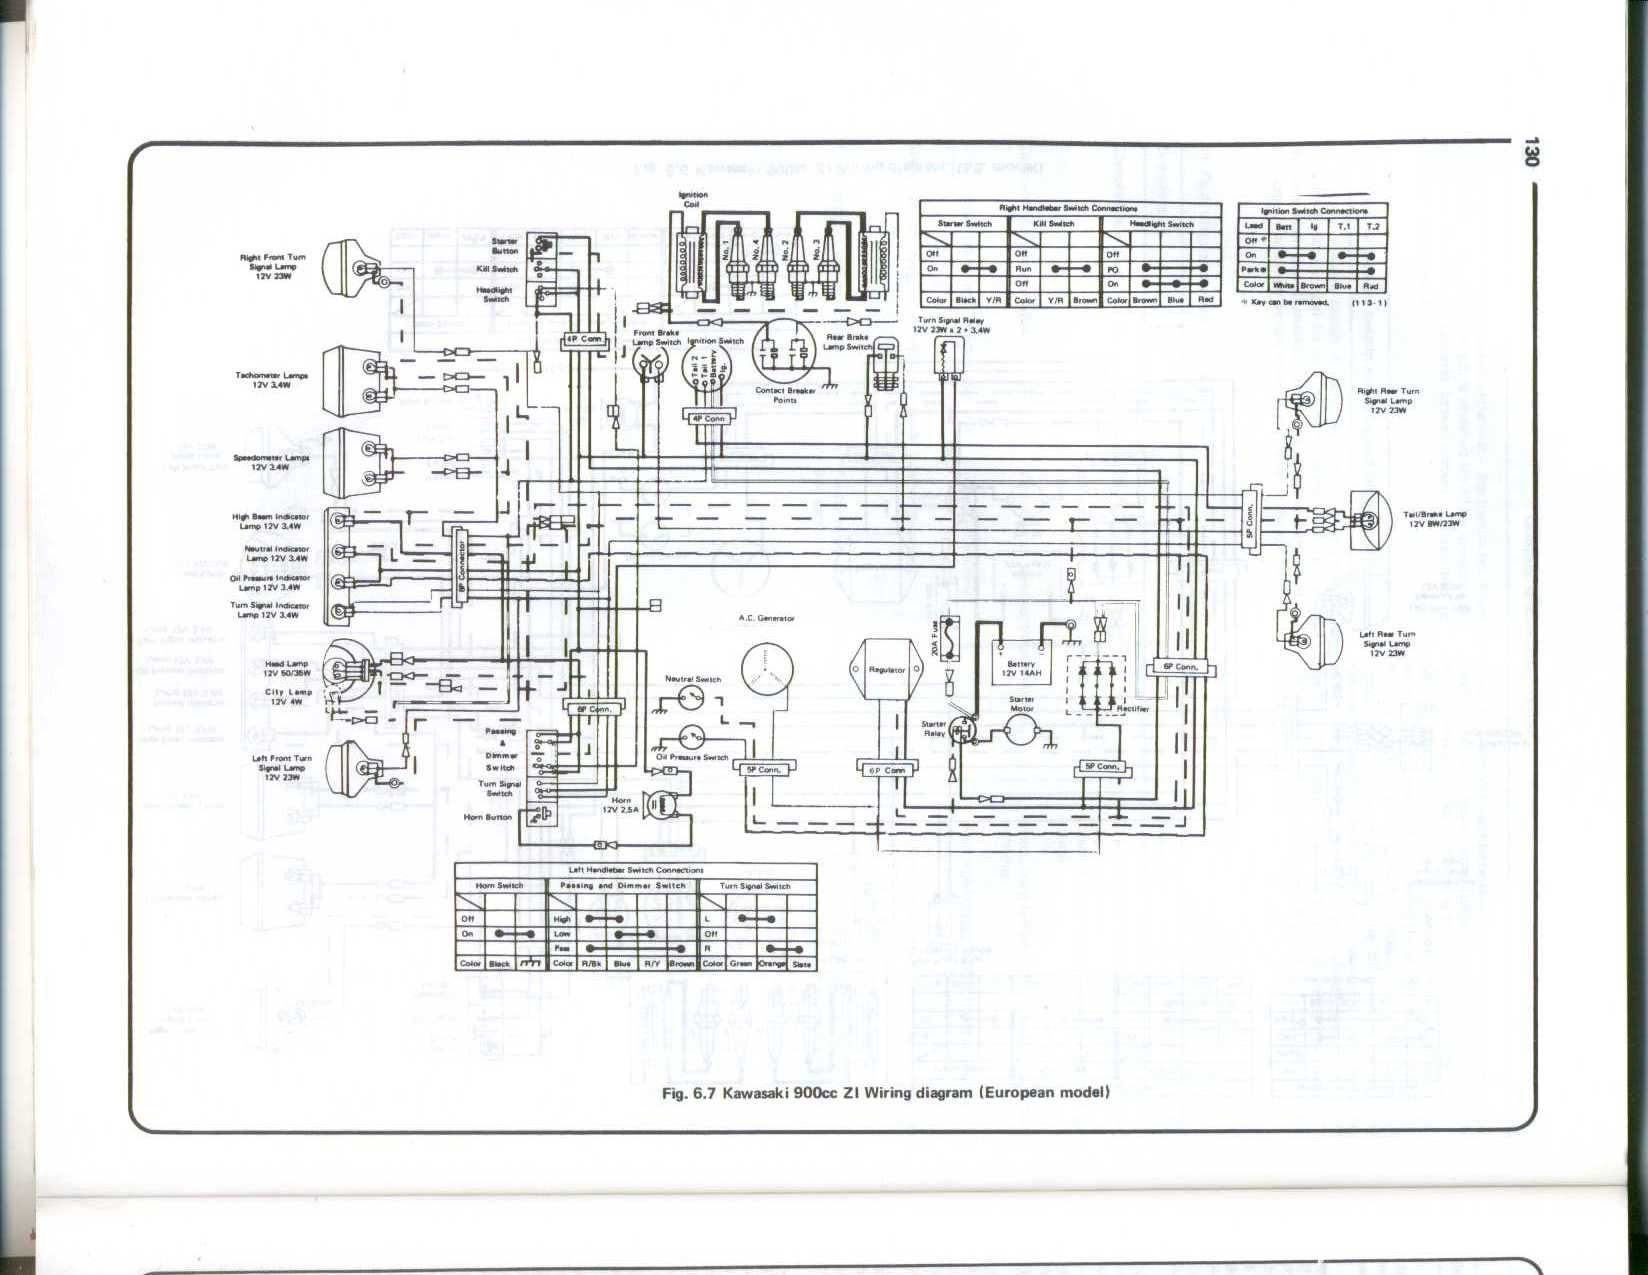 1980 Kz1000 Ltd Wiring Diagram